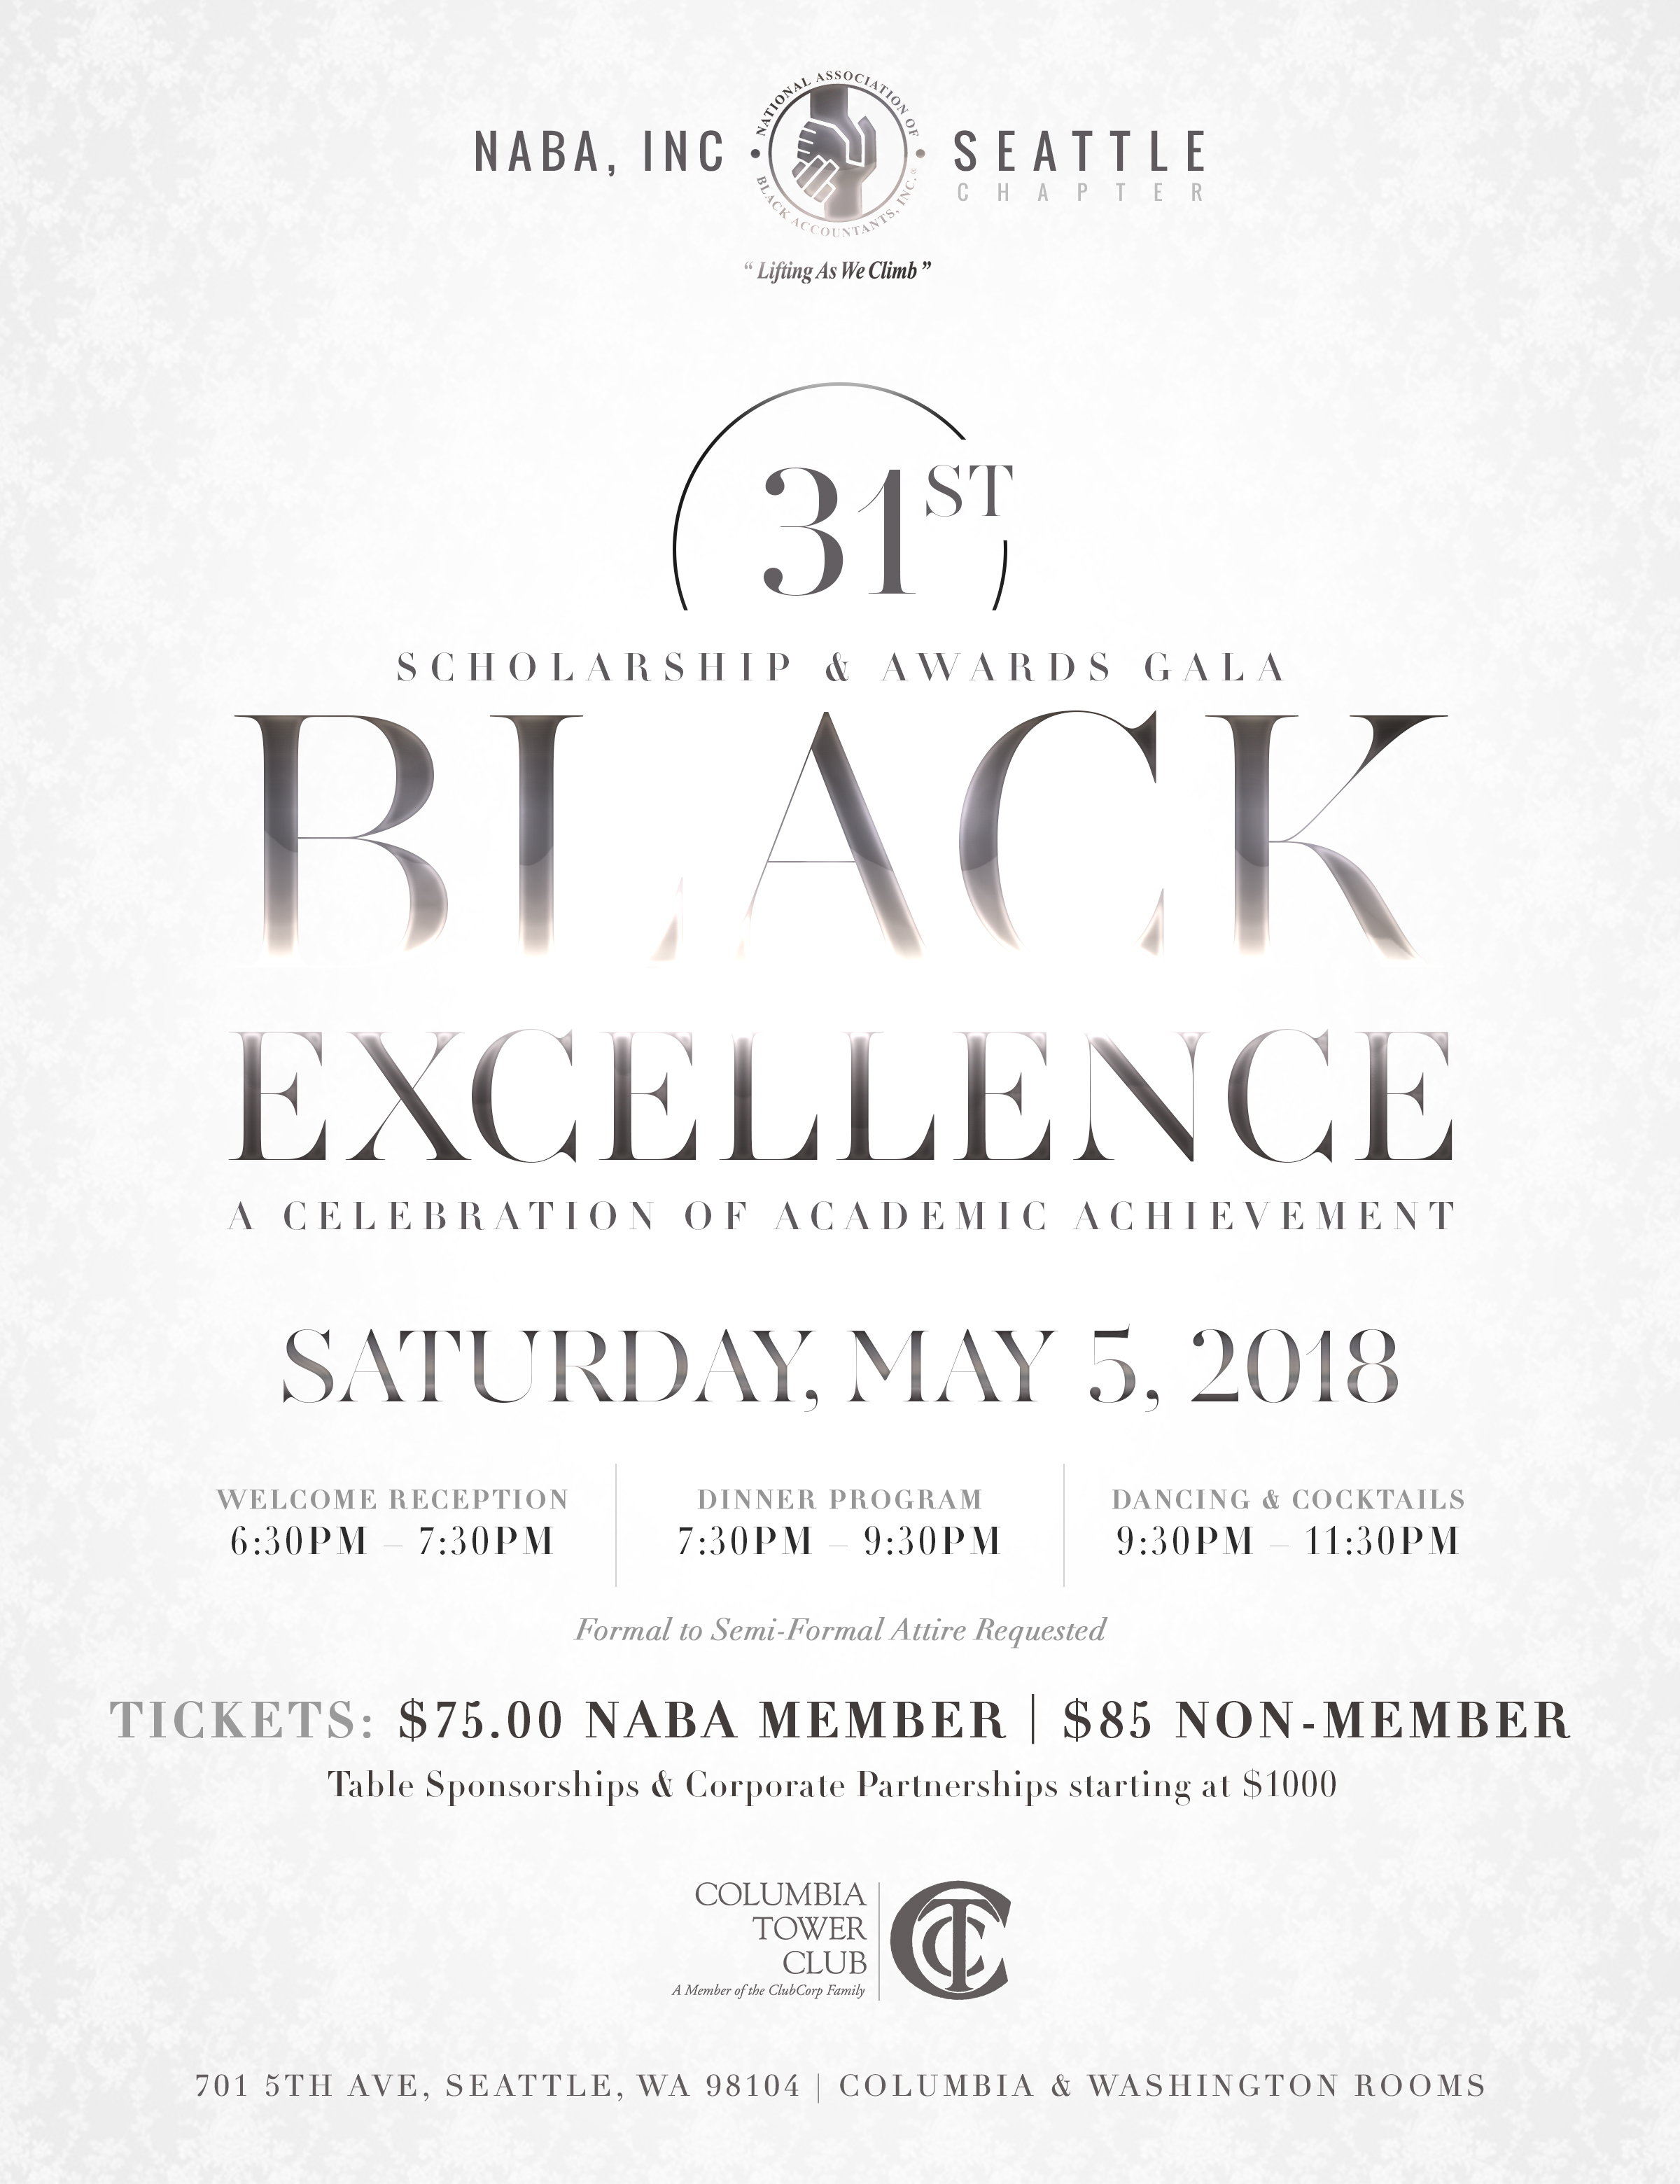 "NABA Seattle welcomes you to the 31st Annual Scholarship & Awards Gala. The title and theme for this year's event is  ""Black Excellence: A Celebration of Academic Achievement"" .   NABA was formed to address the professional needs of its members and to build leaders that shape the future of the accounting and finance professions with a commitment to inspire the same in our successors. As part of this mission, the scholarship and awards gala is an opportunity to recognize students majoring in the accounting, finance and other business fields. For 31 years, NABA Seattle has celebrated the academic achievements of students; awarding over $150K in student scholarships to exceptional minority students in the state of Washington.  Your support of passionate, innovative and enterprising individuals is a message we want to share with our future business leaders. Please join us at the  Columbia Tower Club  on May 5th for a fun filled night of celebration!   Eventbrite Link: http://nabablackexcellencegala.eventbrite.com"